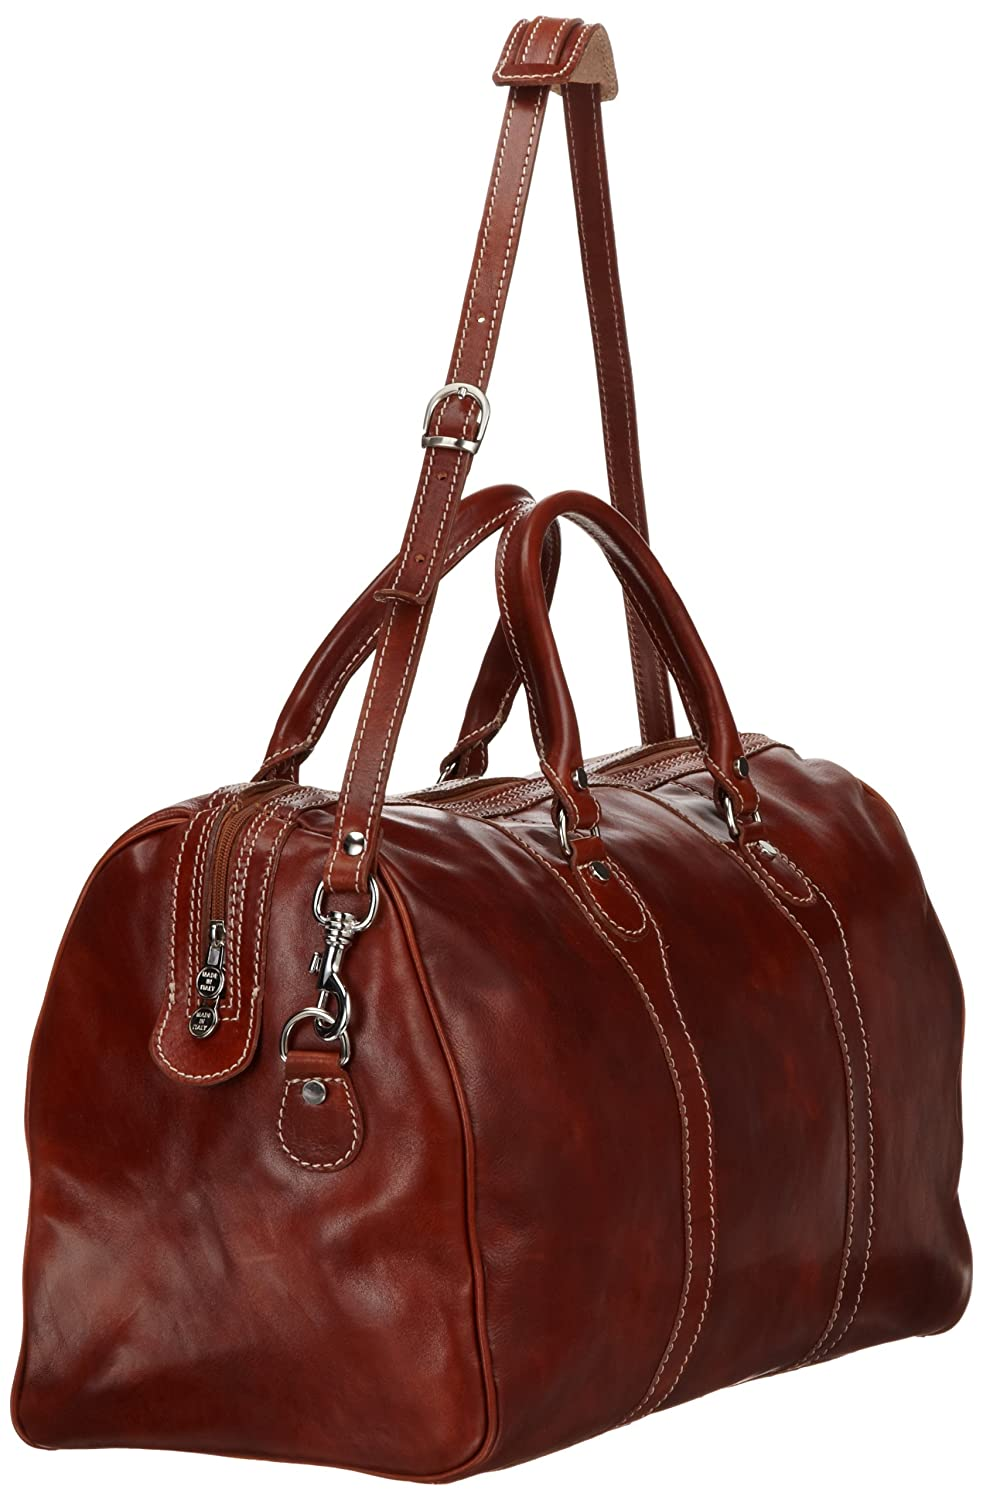 Floto Luggage Milano Duffle Bag One Size Olive Brown